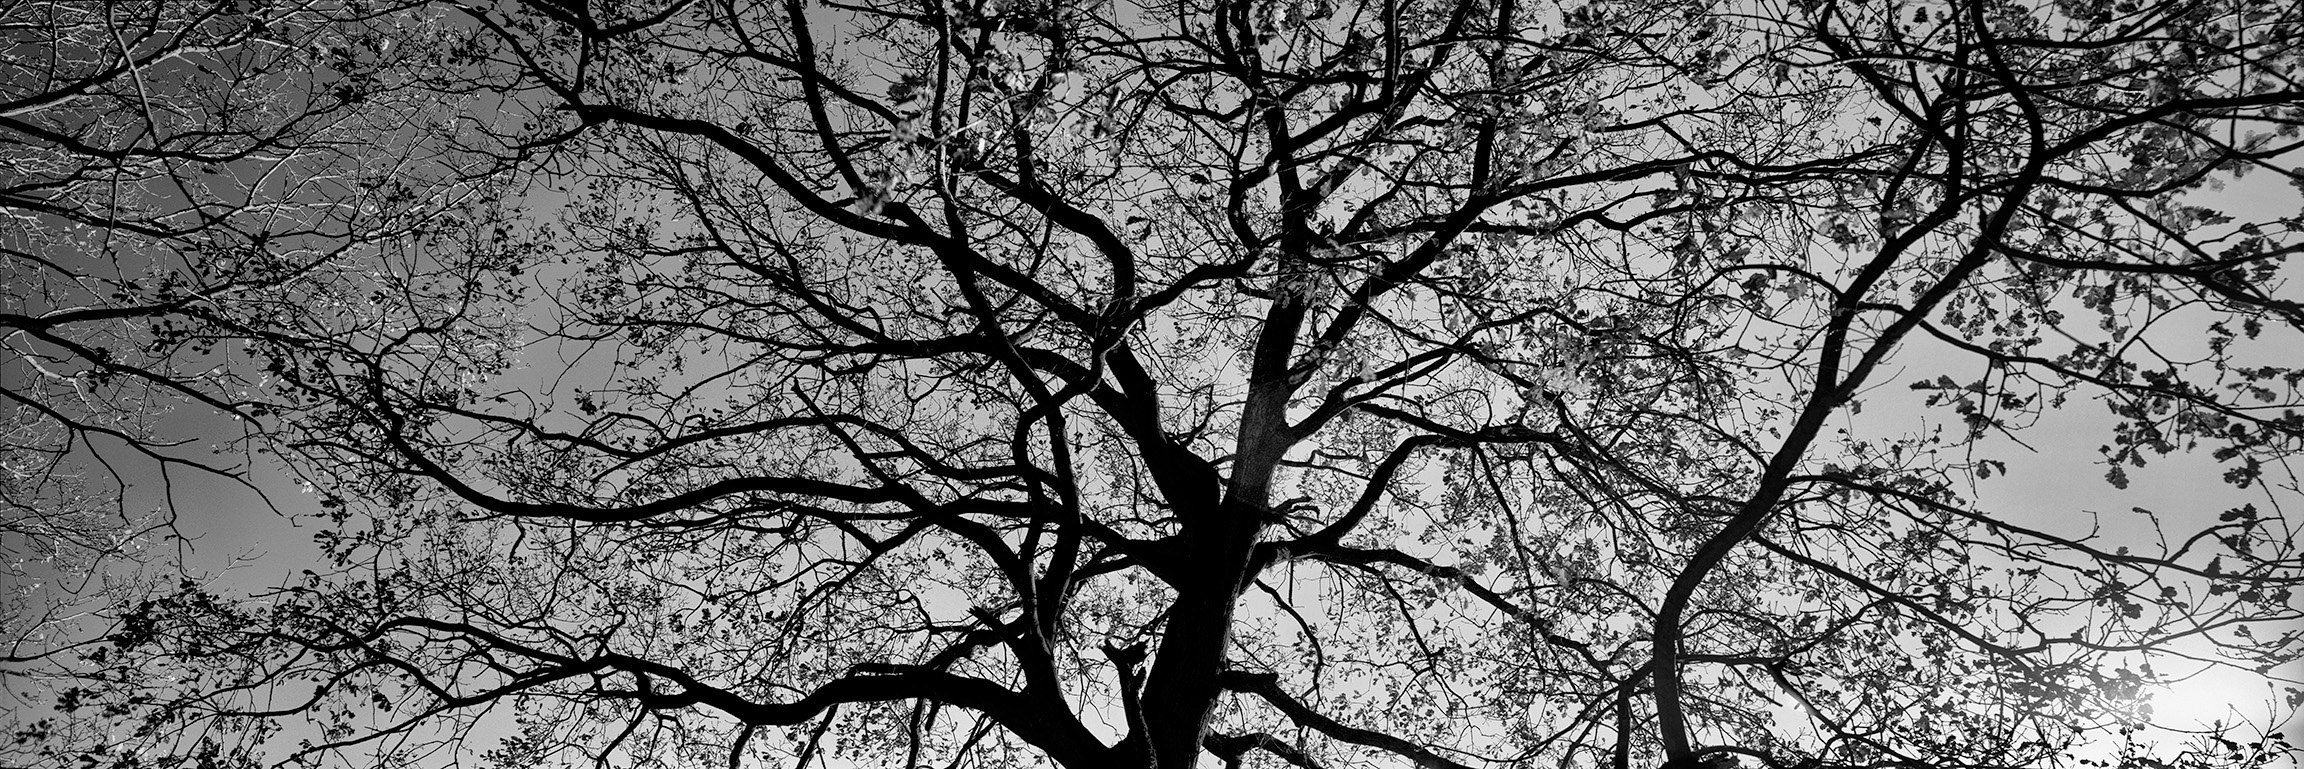 Oak Trees in Winter B&W